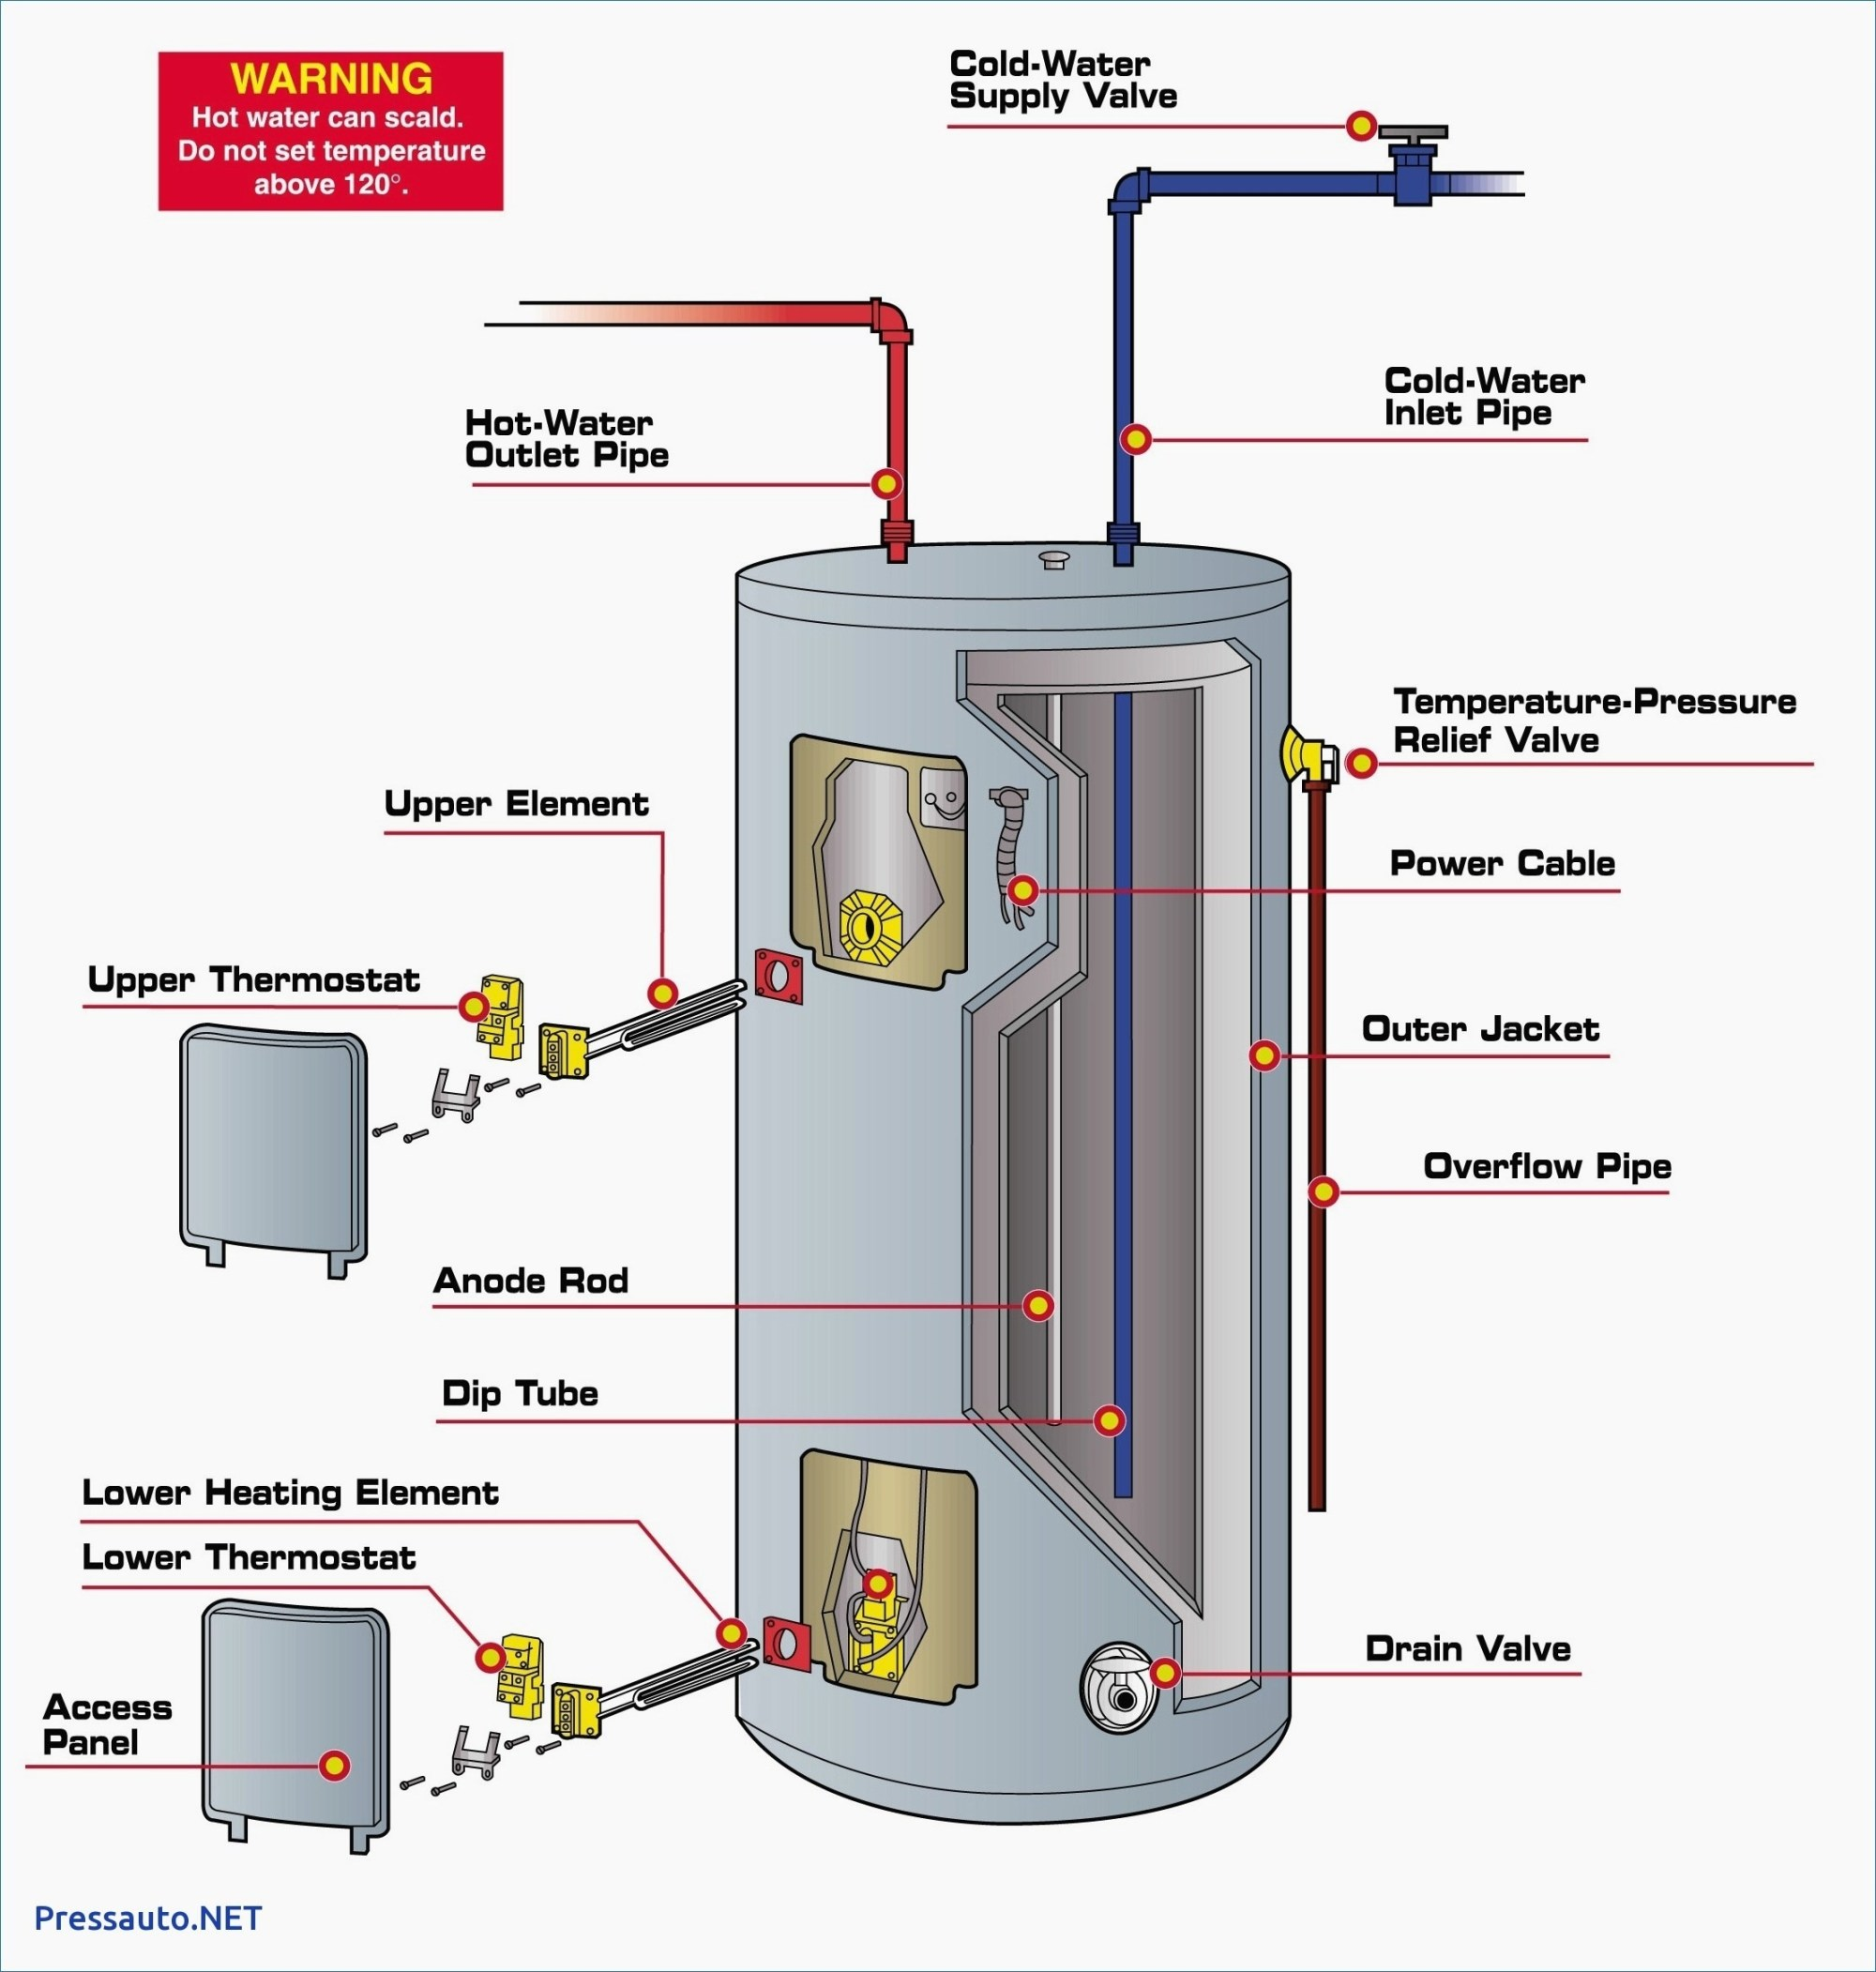 hight resolution of wiring a hot water heater diagram get free image about wiring wiring diagram electric hot water heater diagram 220v water heater